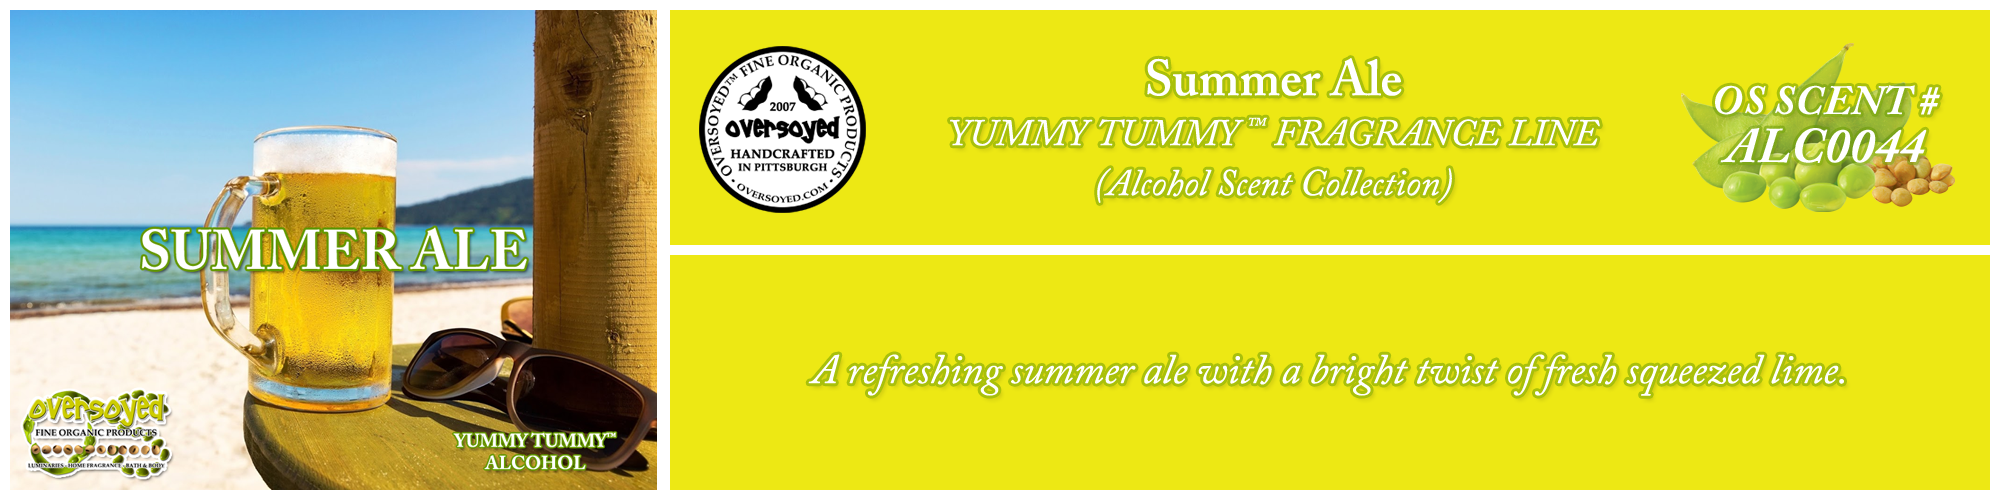 Summer Ale Handcrafted Products Collection